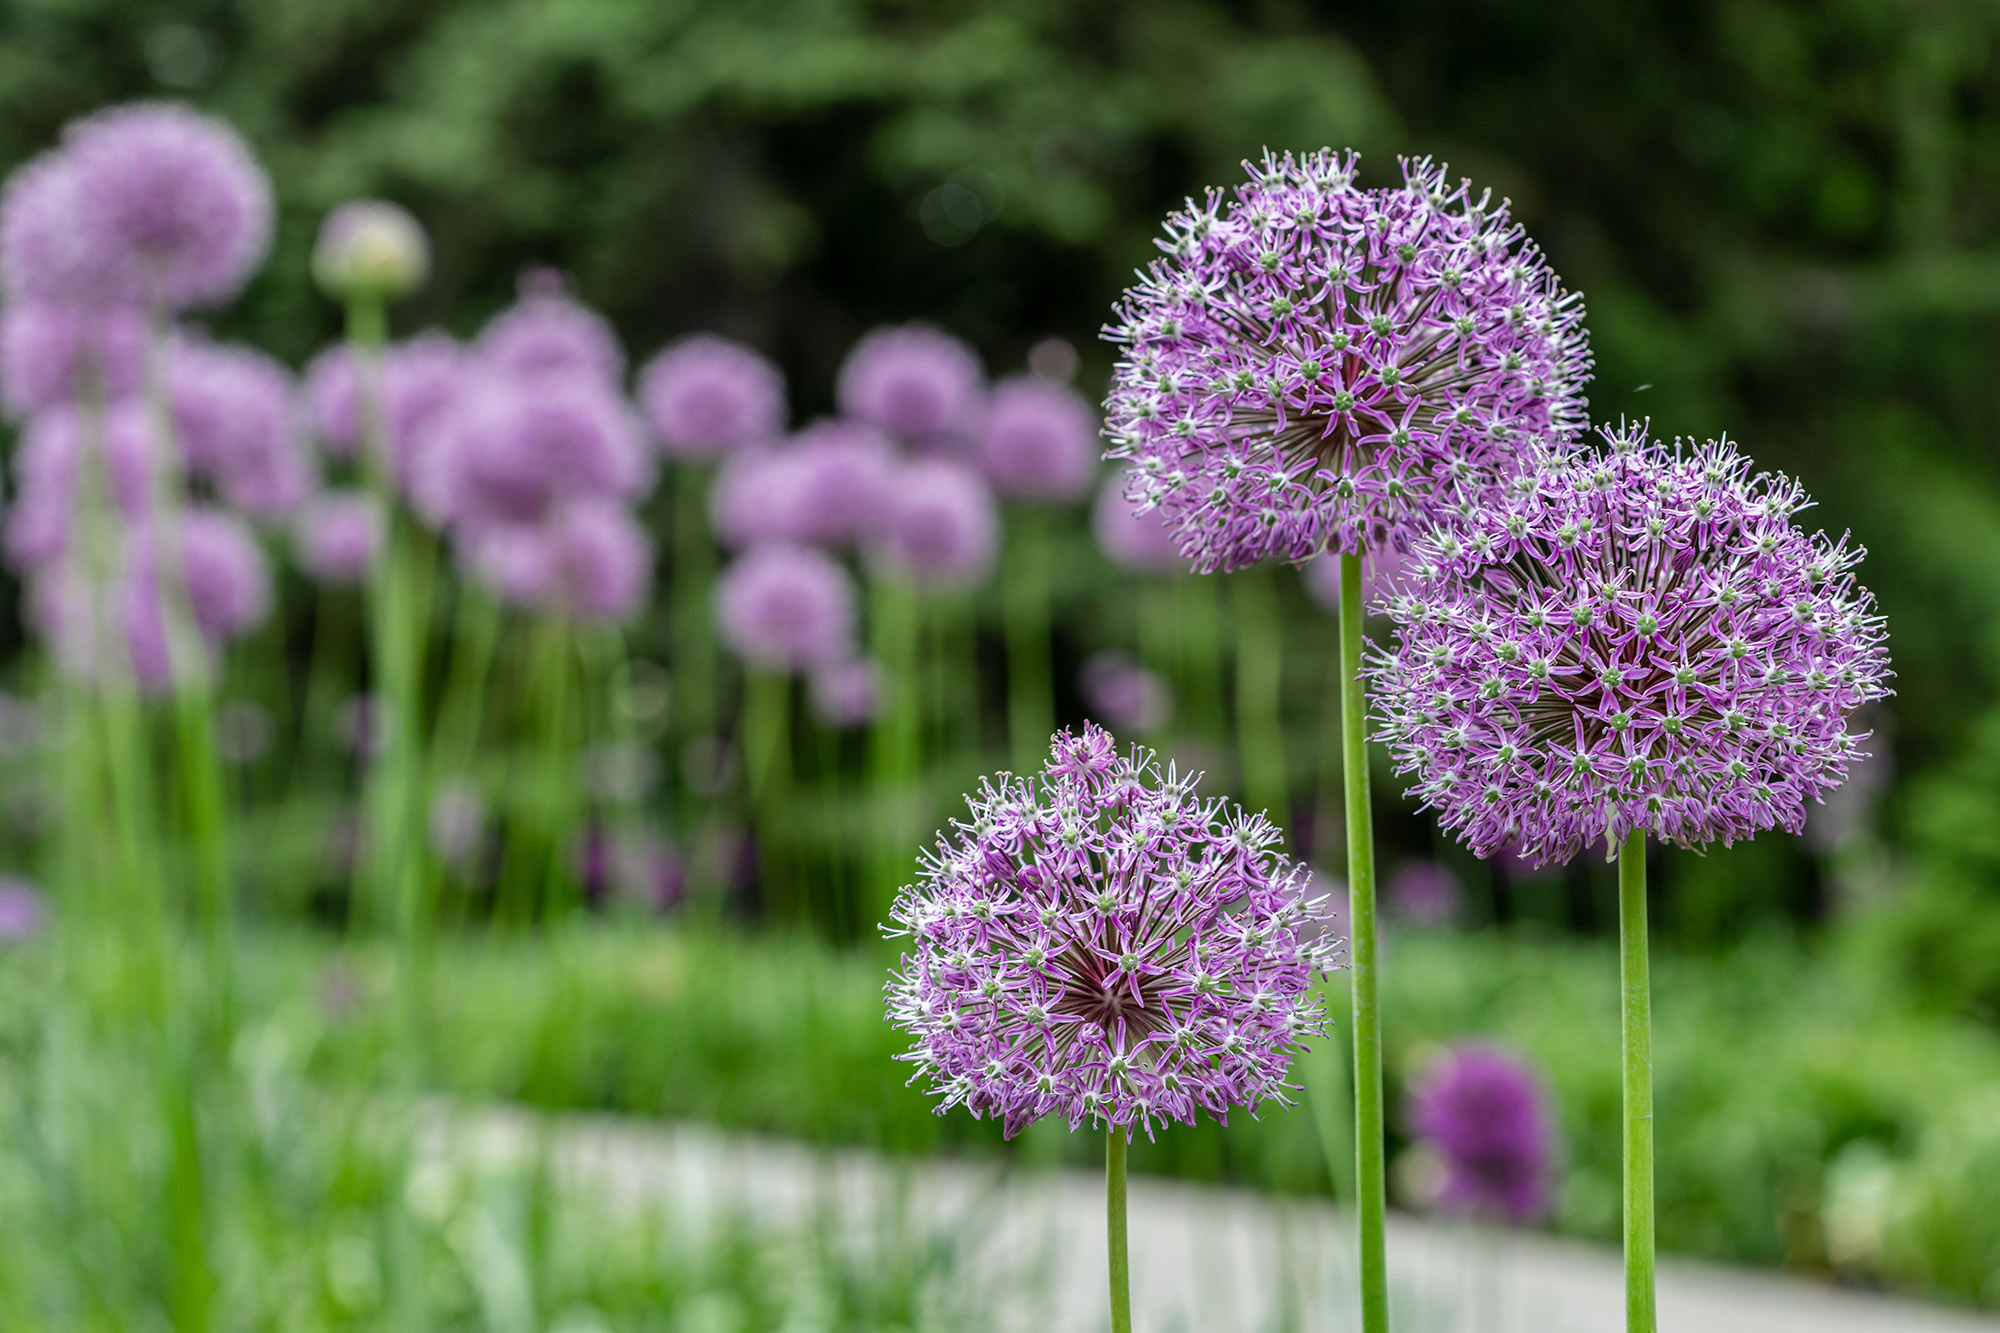 Ornamental onions (alliums) along Daylily Walk